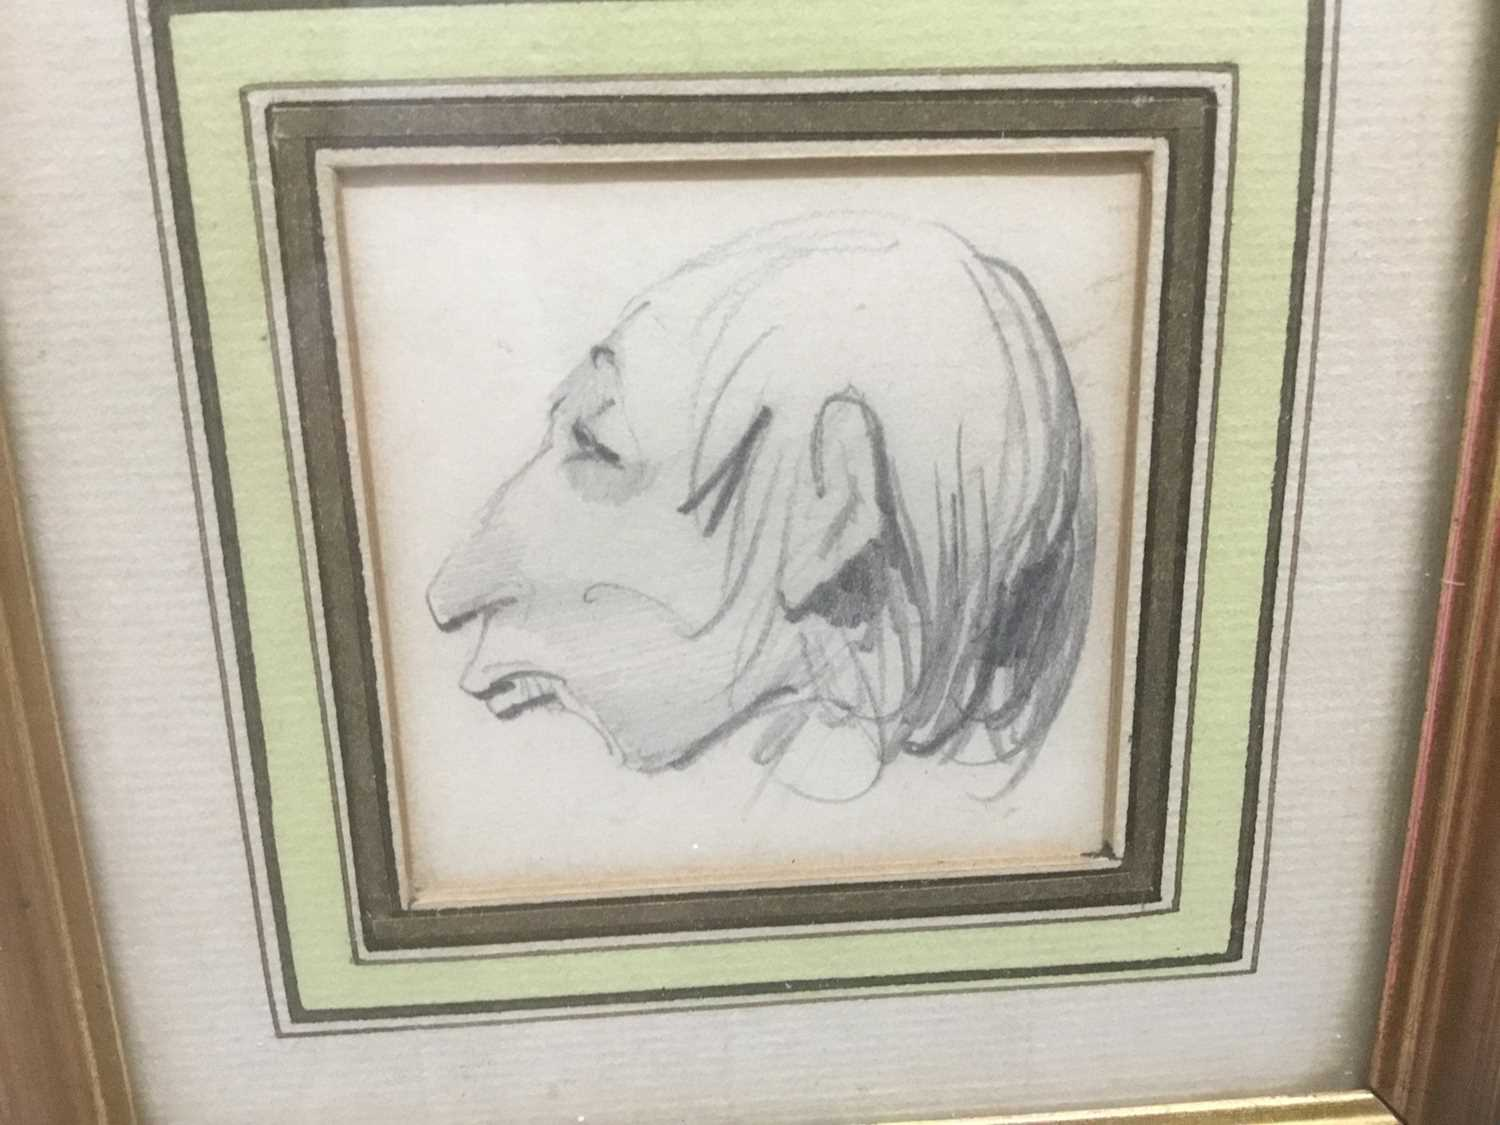 Henry Bonaventure Monnier (1805-1877) three pencil sketch caricatures of figures, tow signed, 14.5cm - Image 3 of 9